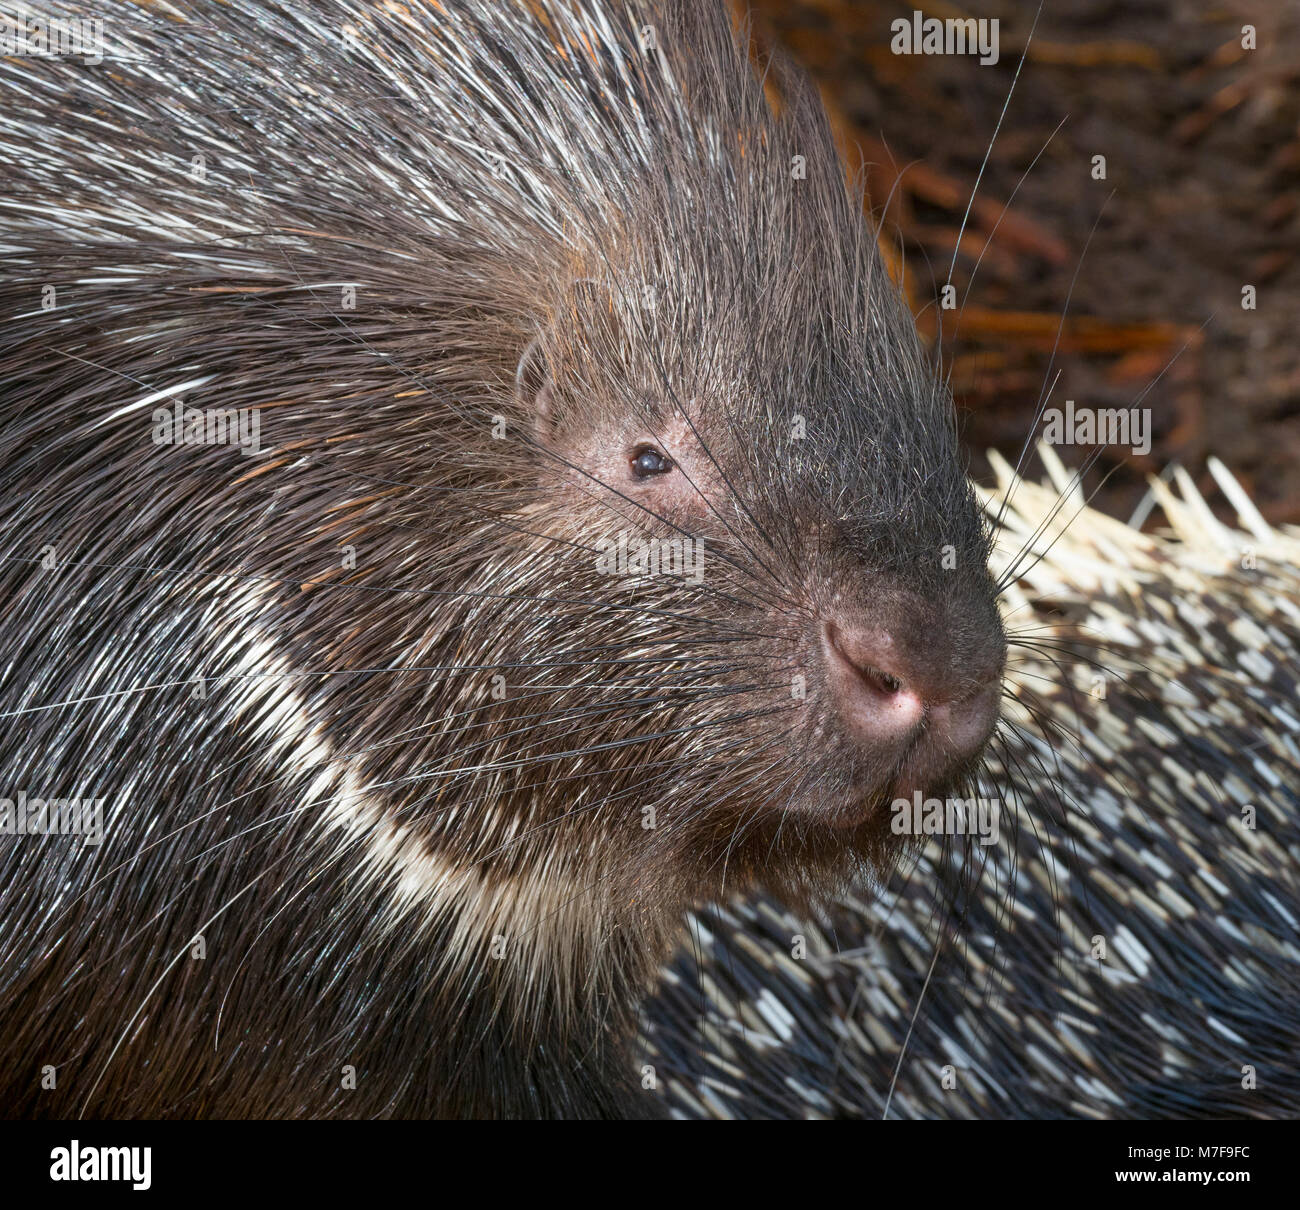 Indian crested porcupine Hystrix indica - Stock Image